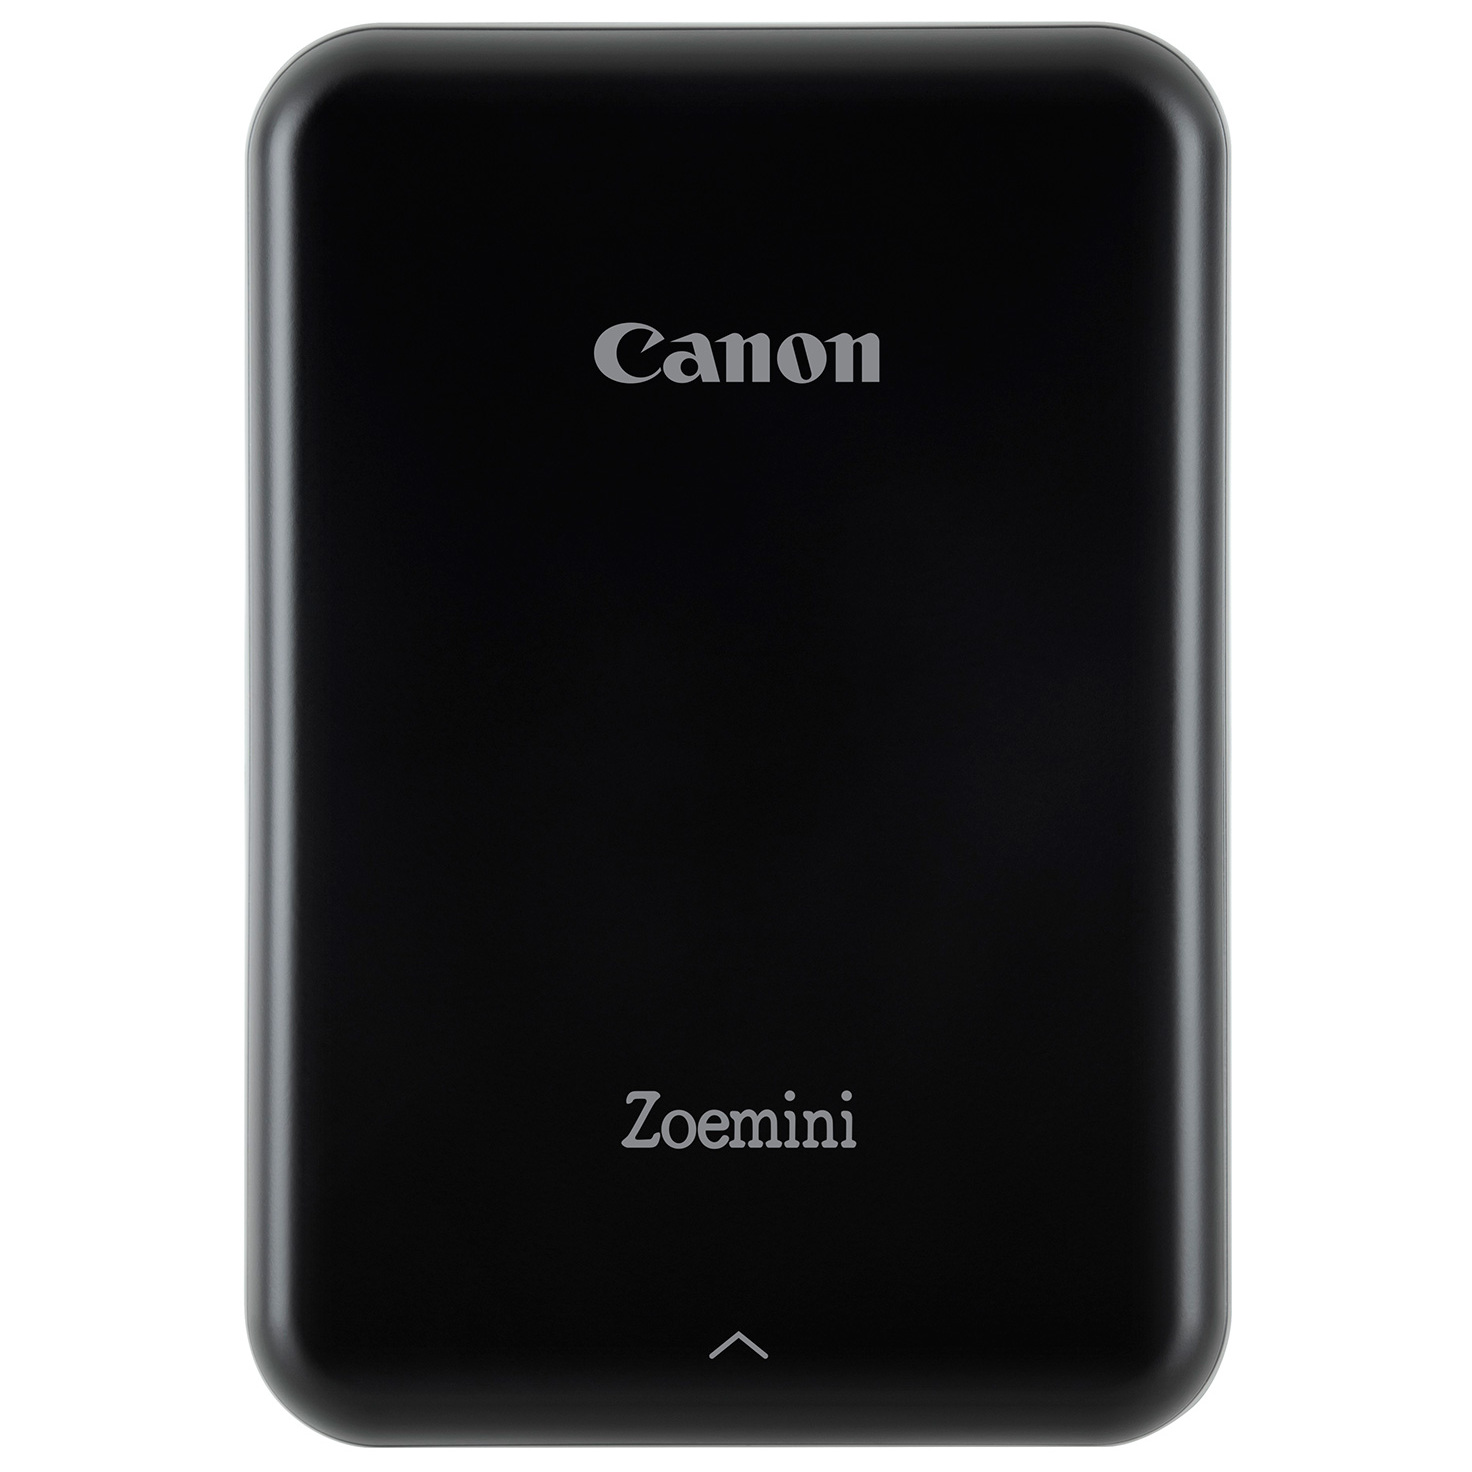 Canon Selphycp1000 Compact Photo Printer Kp108in Paper Price Selphy Cp1000 White Pv 123 Zoemini Portable Black Zp 2030 Zink Papers